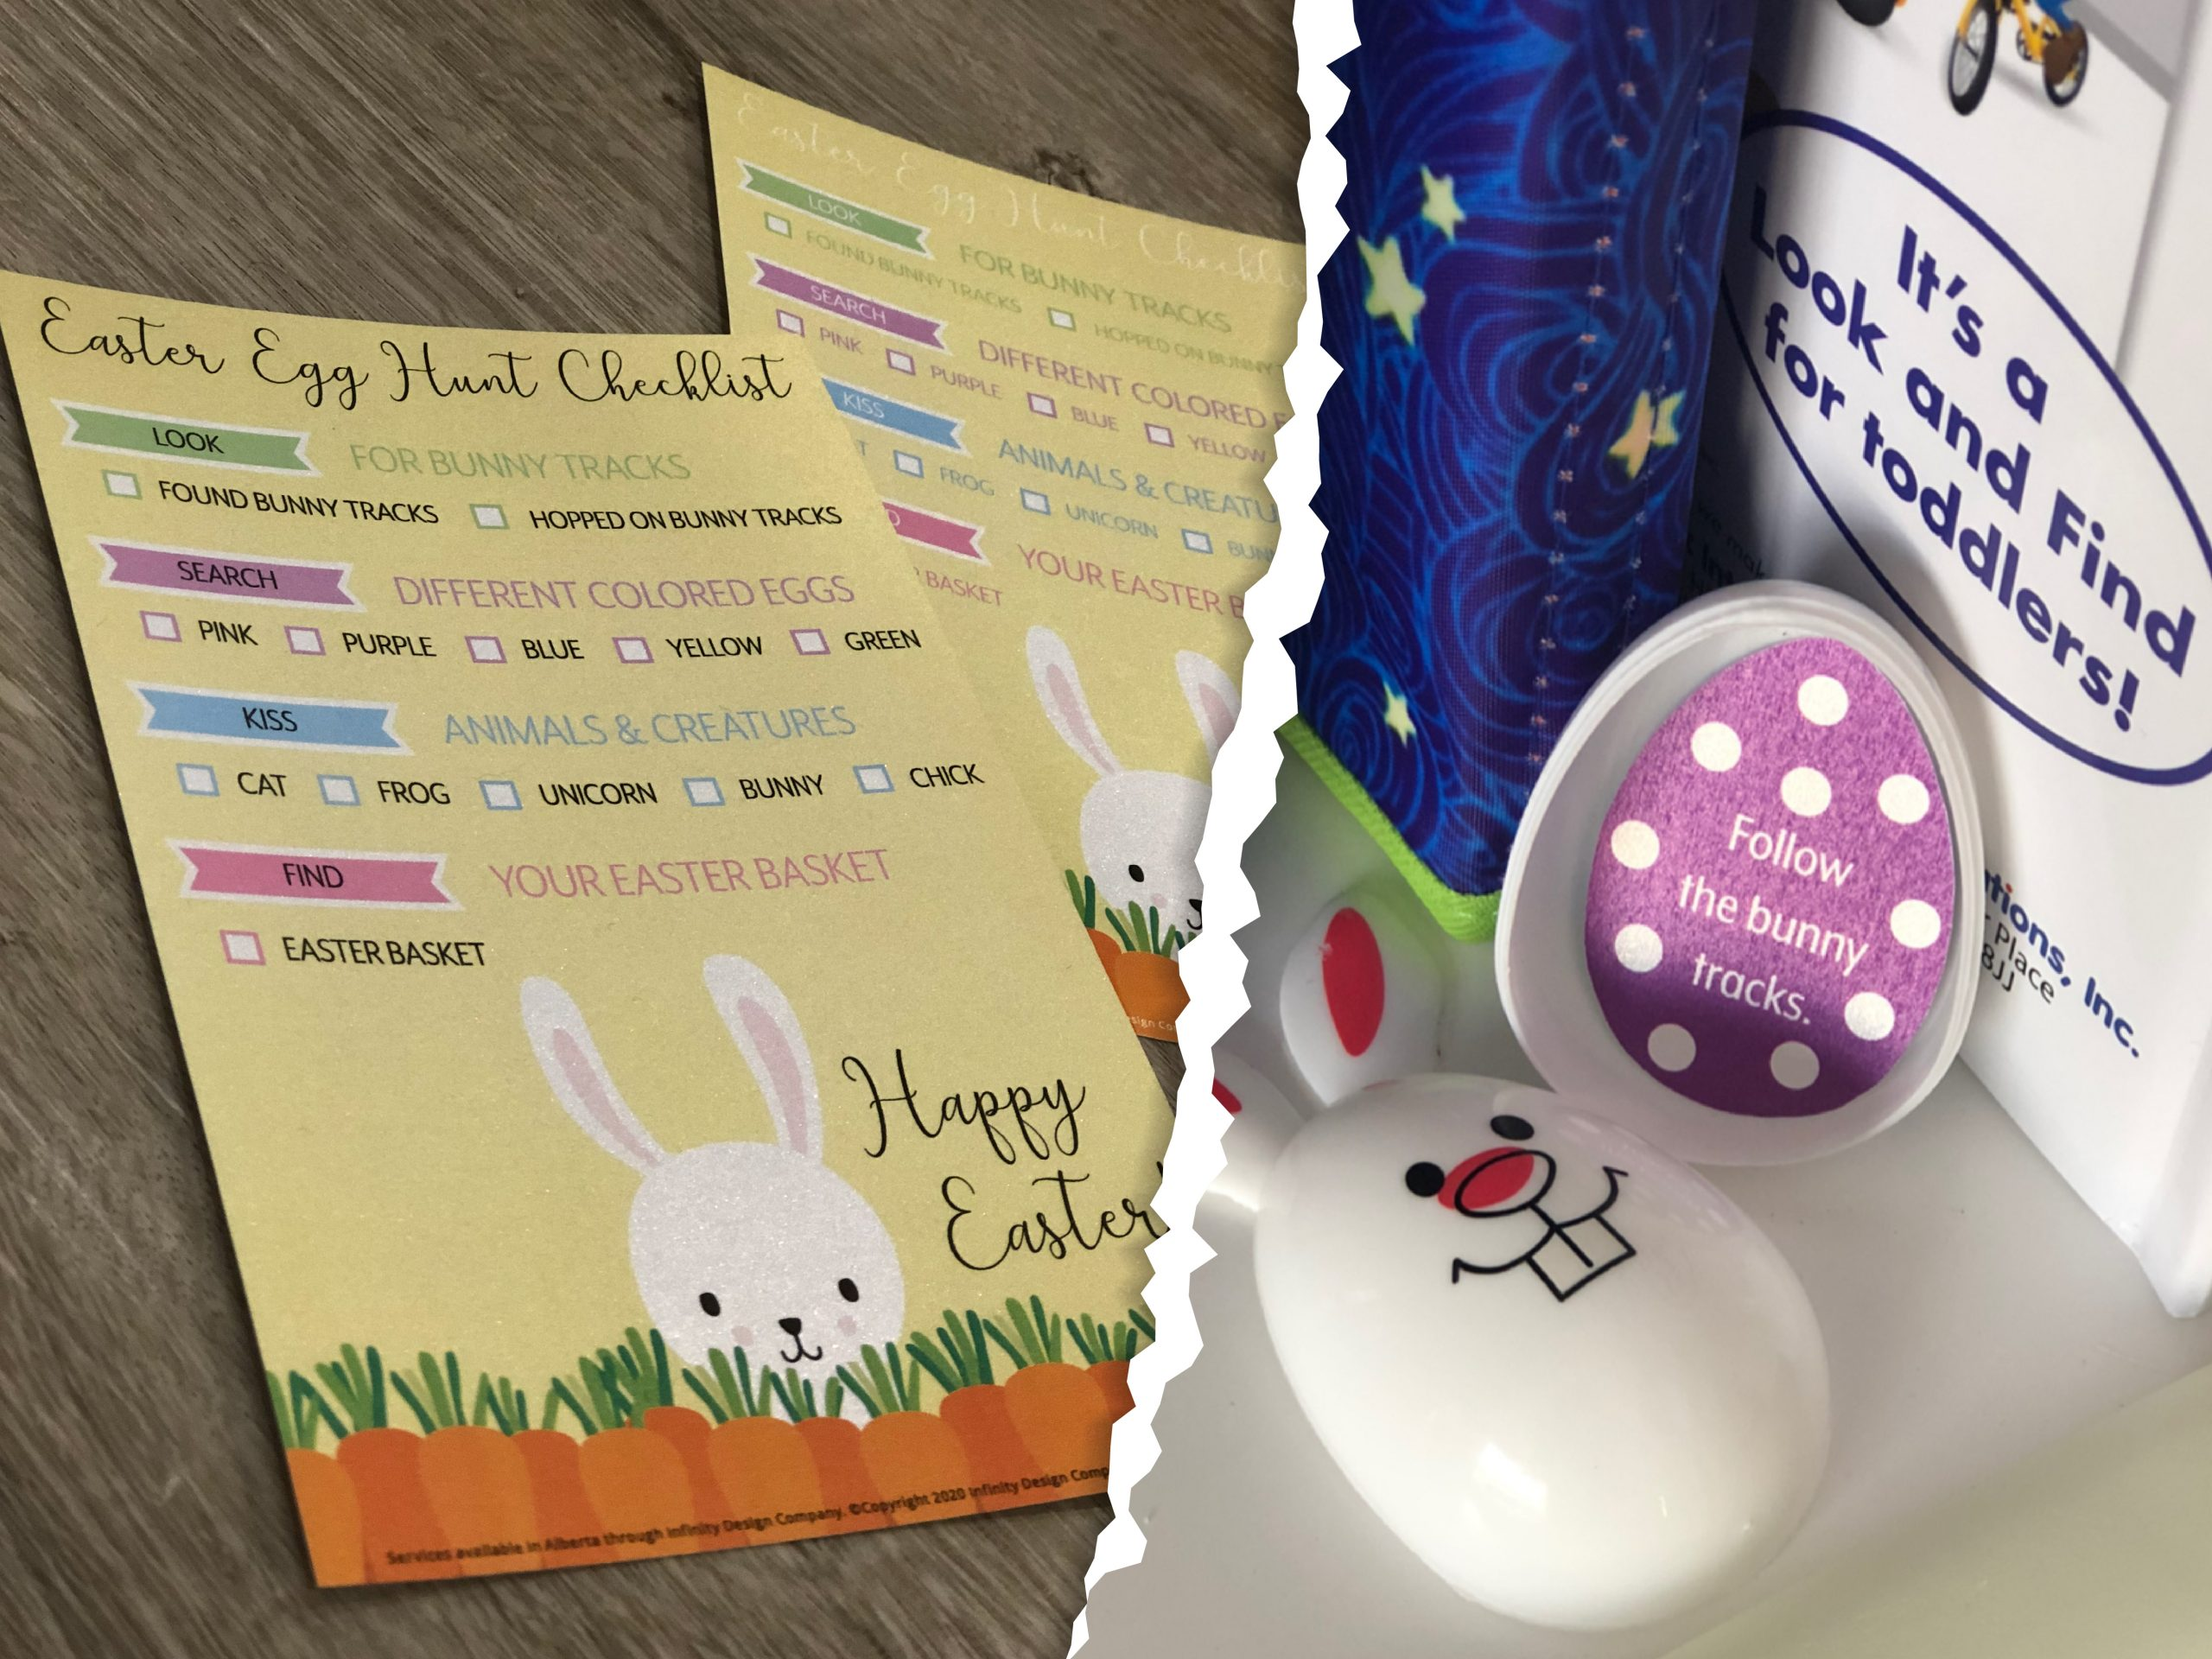 Easter Egg Hunt Checklist and Clues